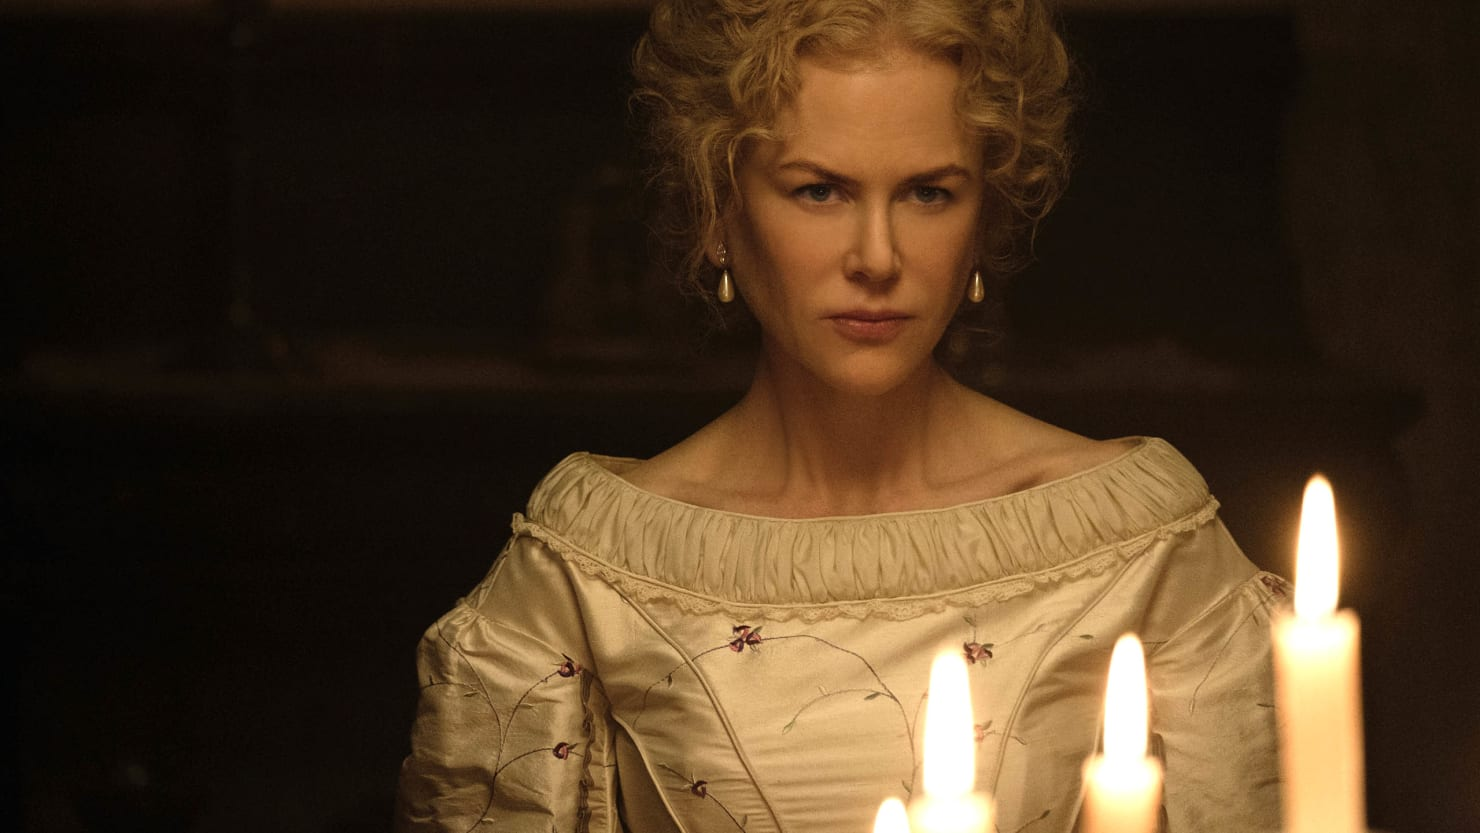 Sofia Coppola's 'The Beguiled' Brings Lust and Female Fury to Cannes